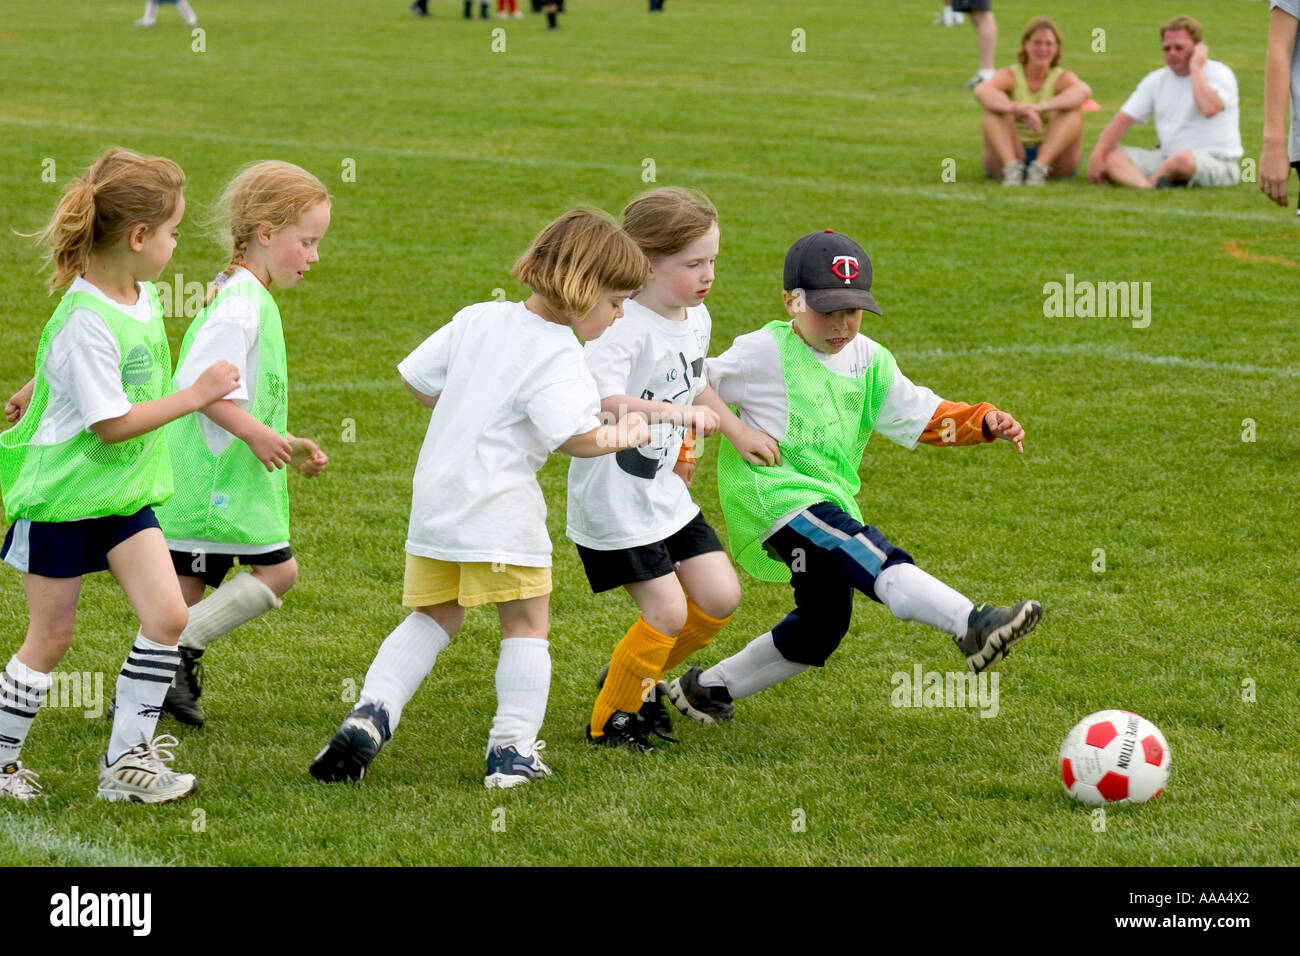 5026aa9c4fe Boys and girls age 4 playing an action filled soccer game. Carondelet Field  by Expo